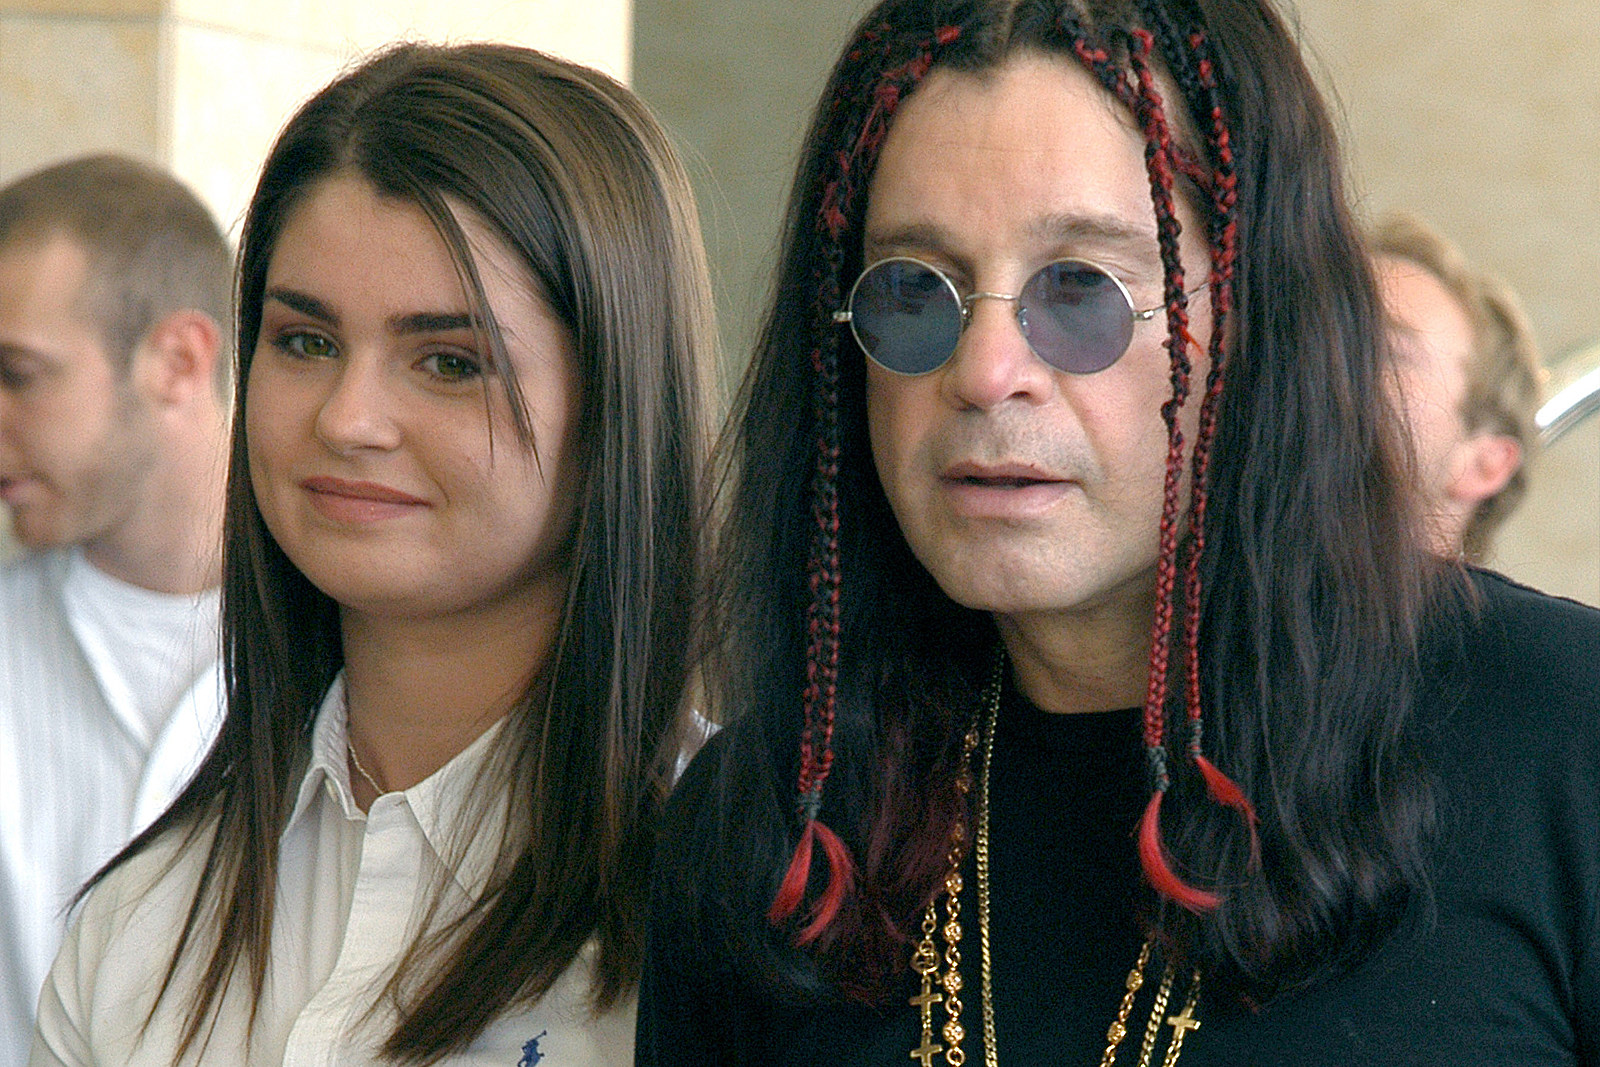 Why Ozzy Osbourne's Daughter Found His Reality Show 'Appalling'